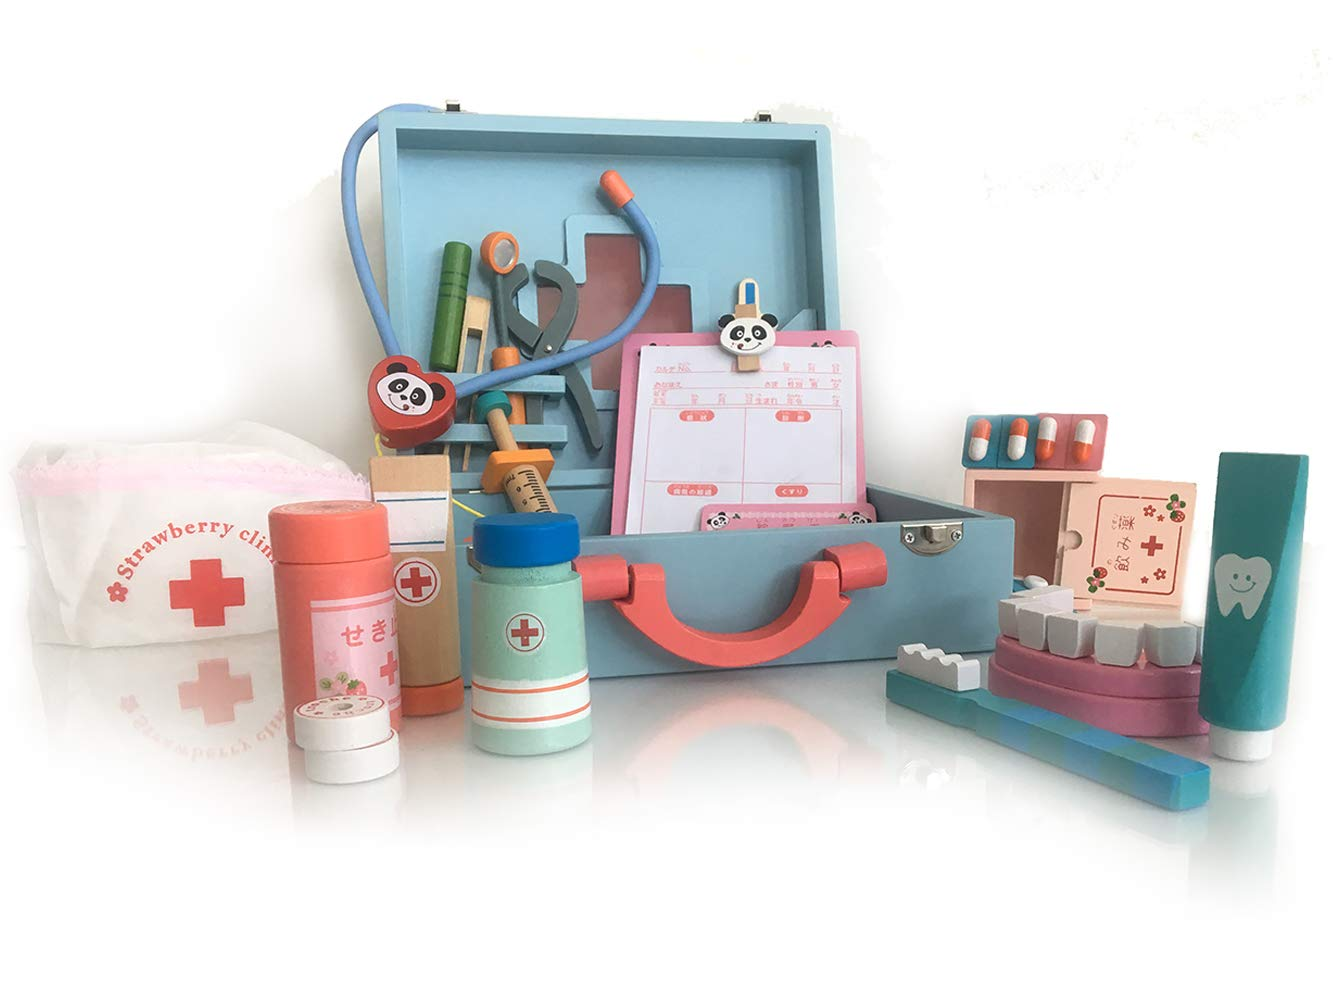 london-kate Deluxe Wooden Play DOCTOR KIT for Kids, Pretend MEDICAL PLAY SET with wooden portal medicine box